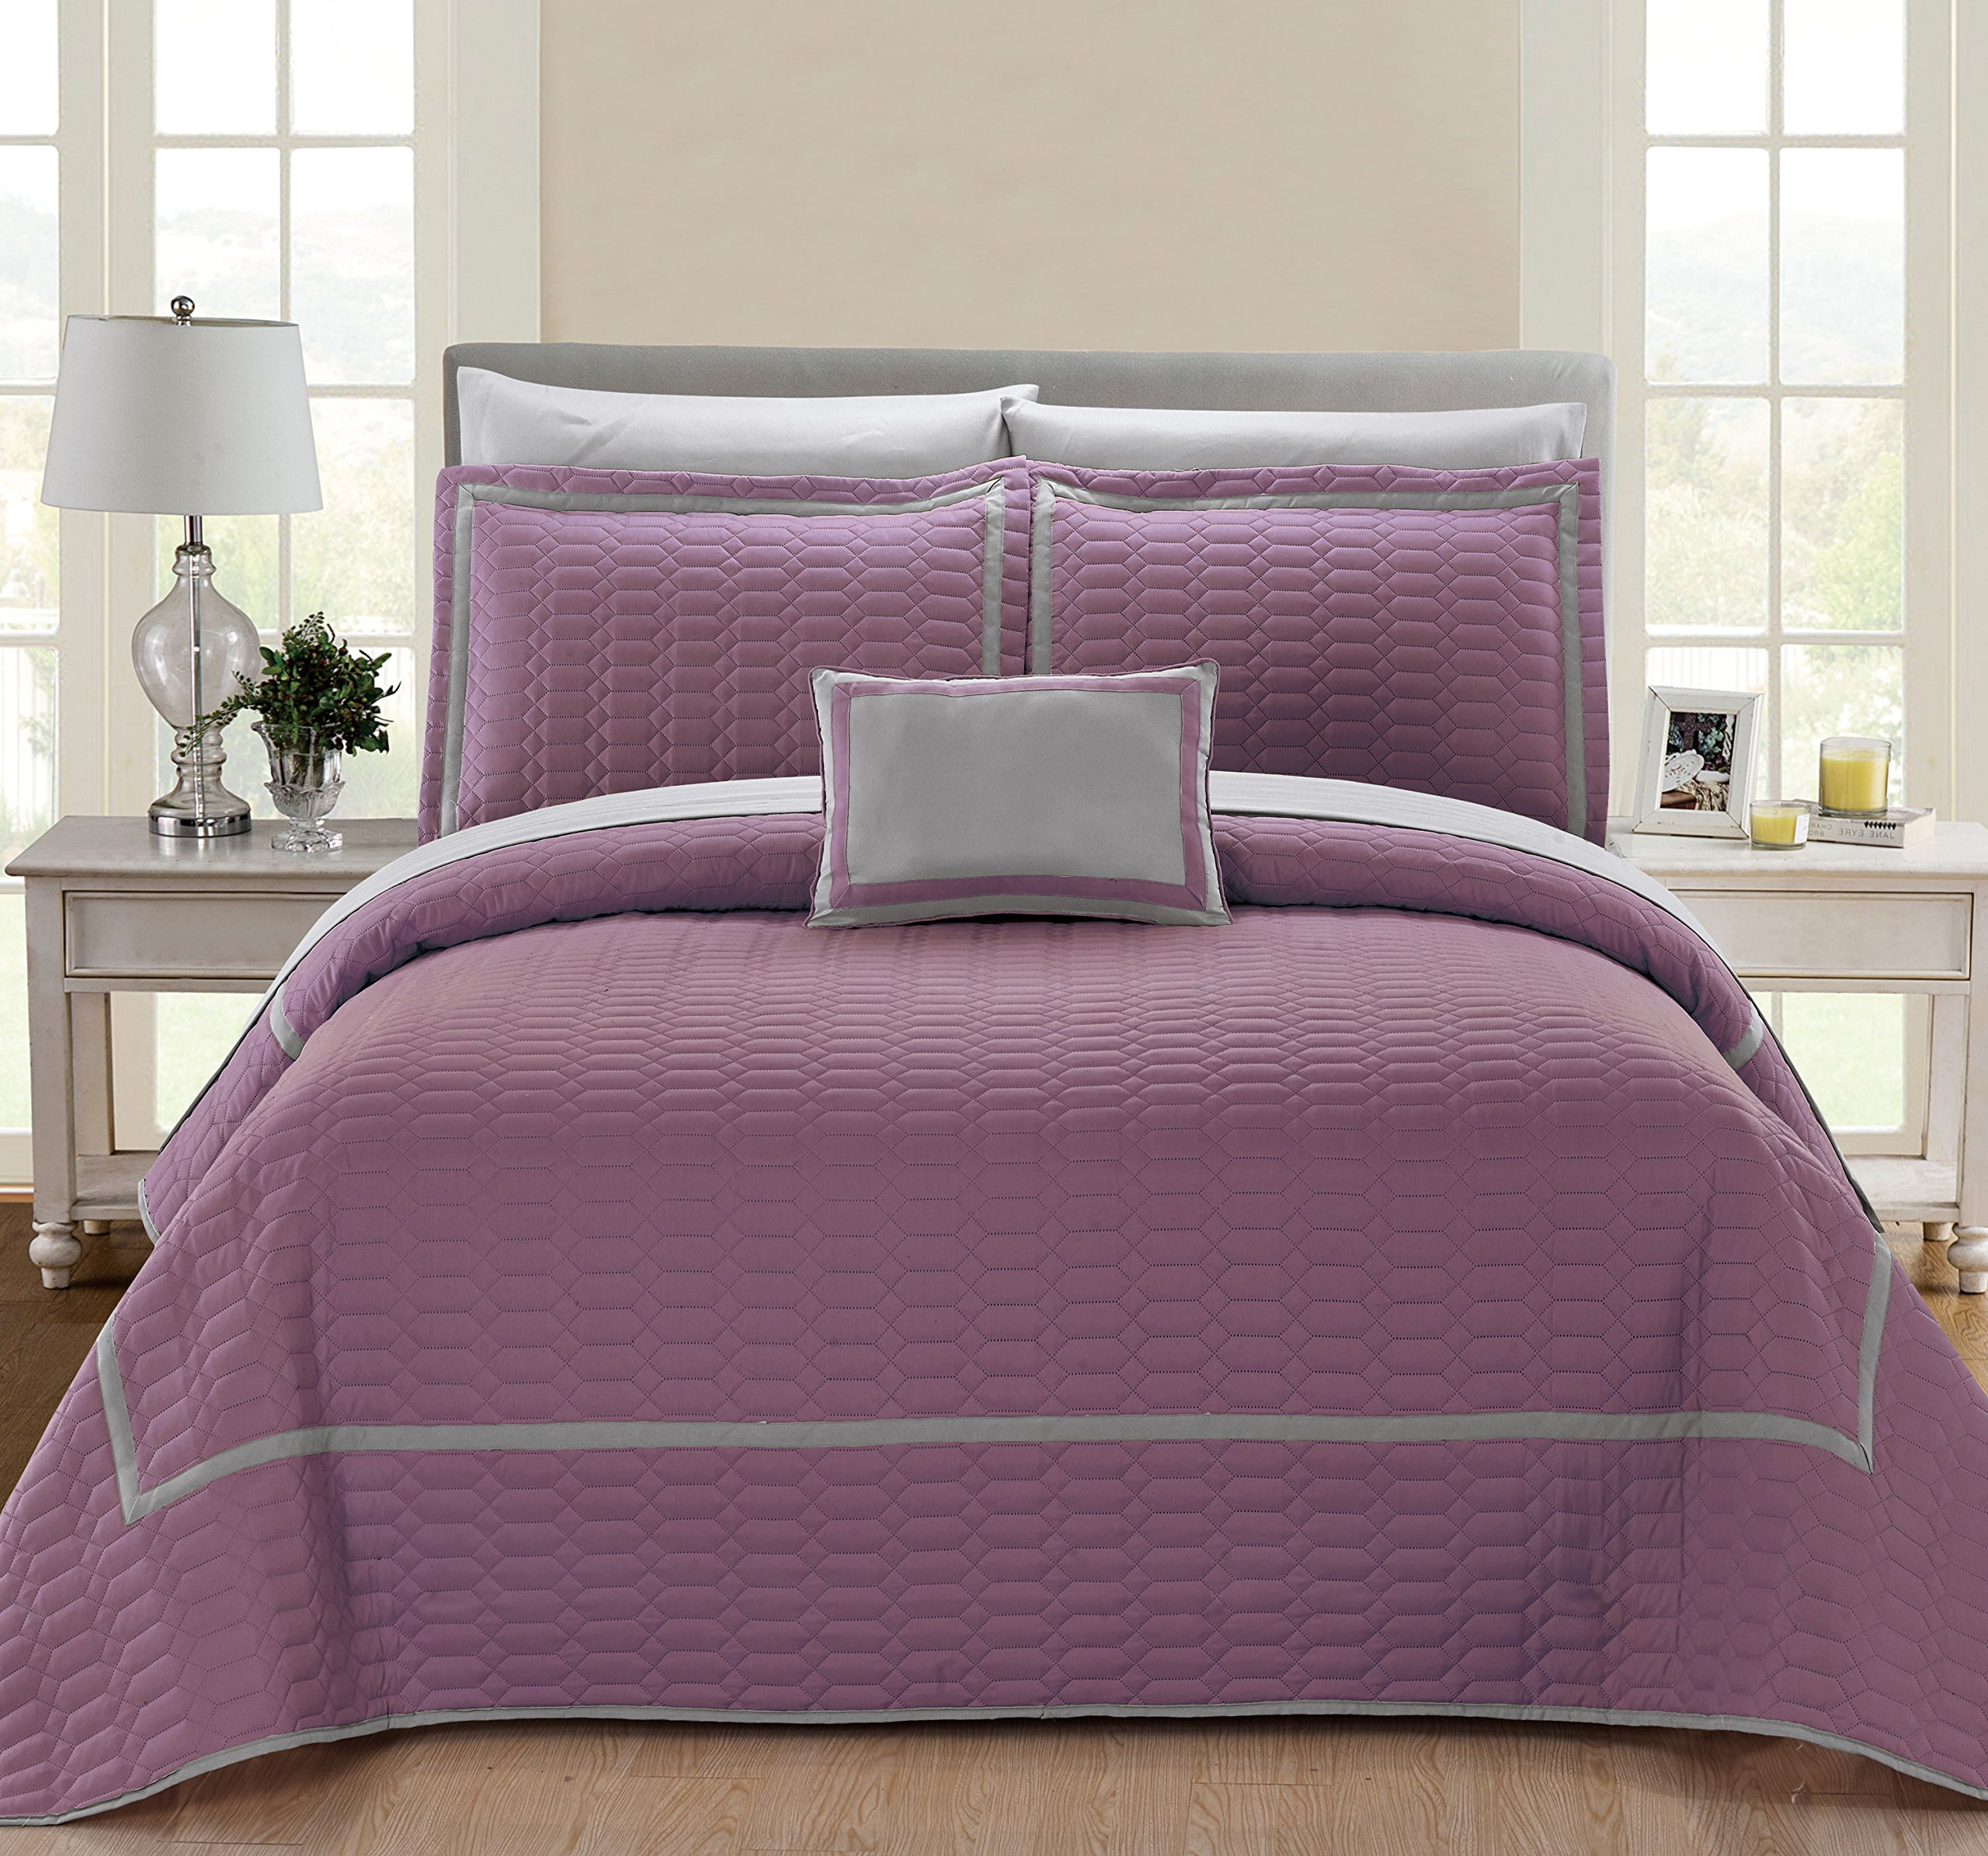 Chic Home Xavier 8 Piece Quilt Cover Set Hotel Collection Two Tone Banded Geometric Quilted Bed in a Bag Bedding - Sheets Decorative Pillow Shams Included, Queen Plum